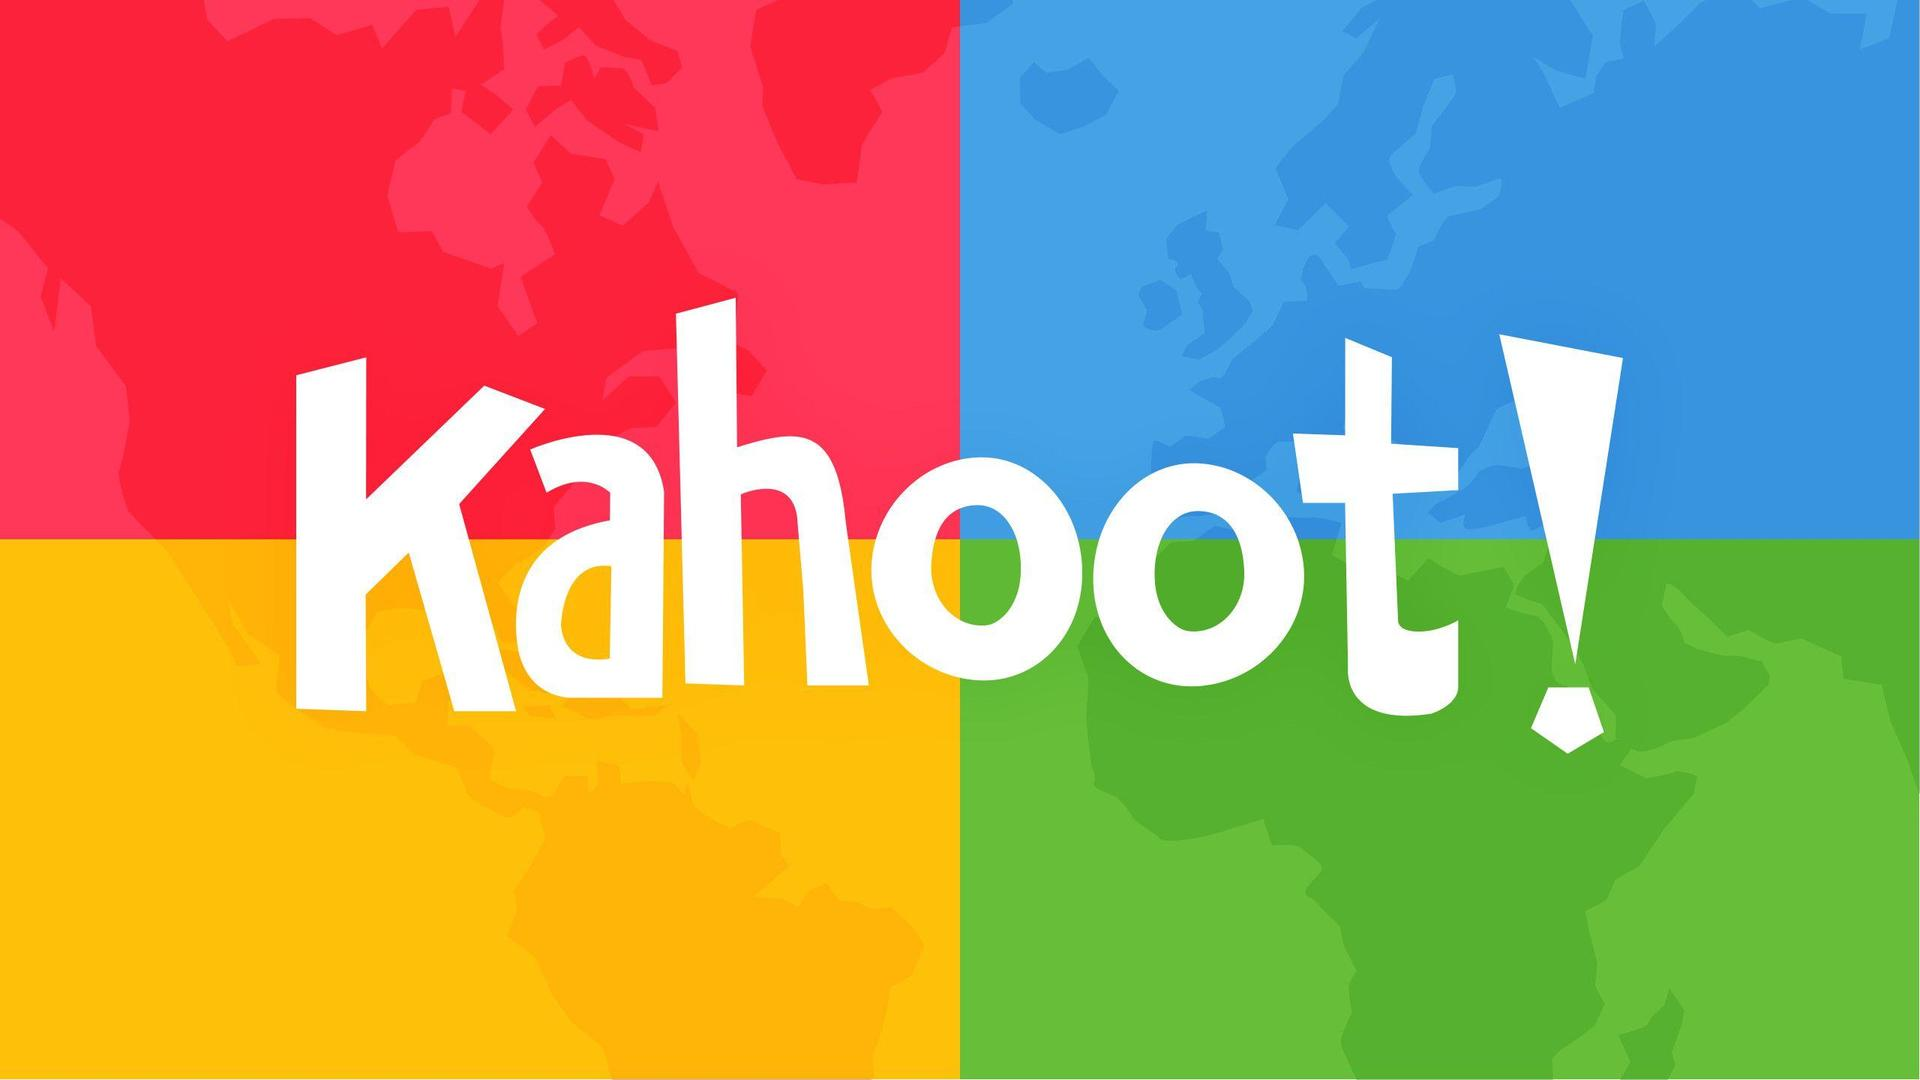 Create a fun game with Kahoots